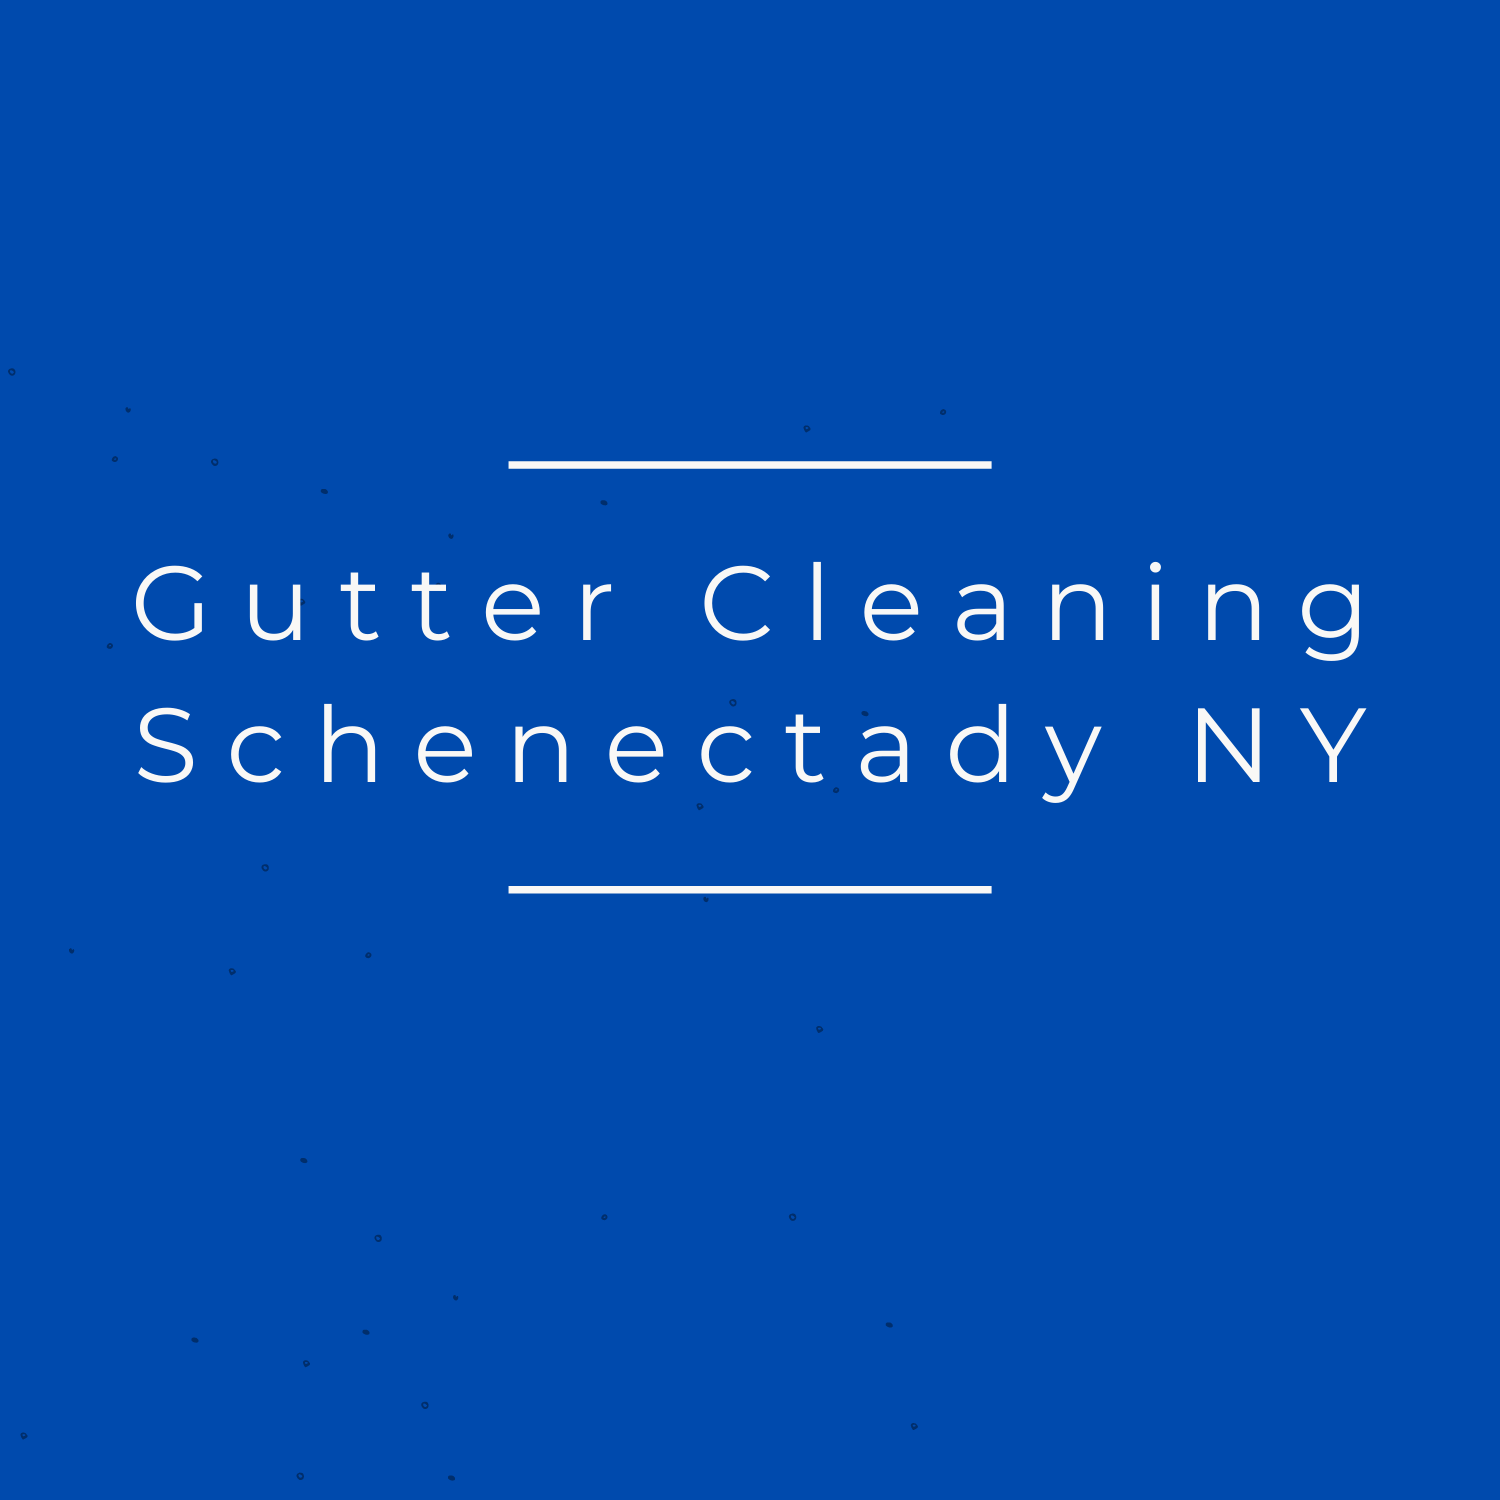 Gutter Cleaning Schenectady NY